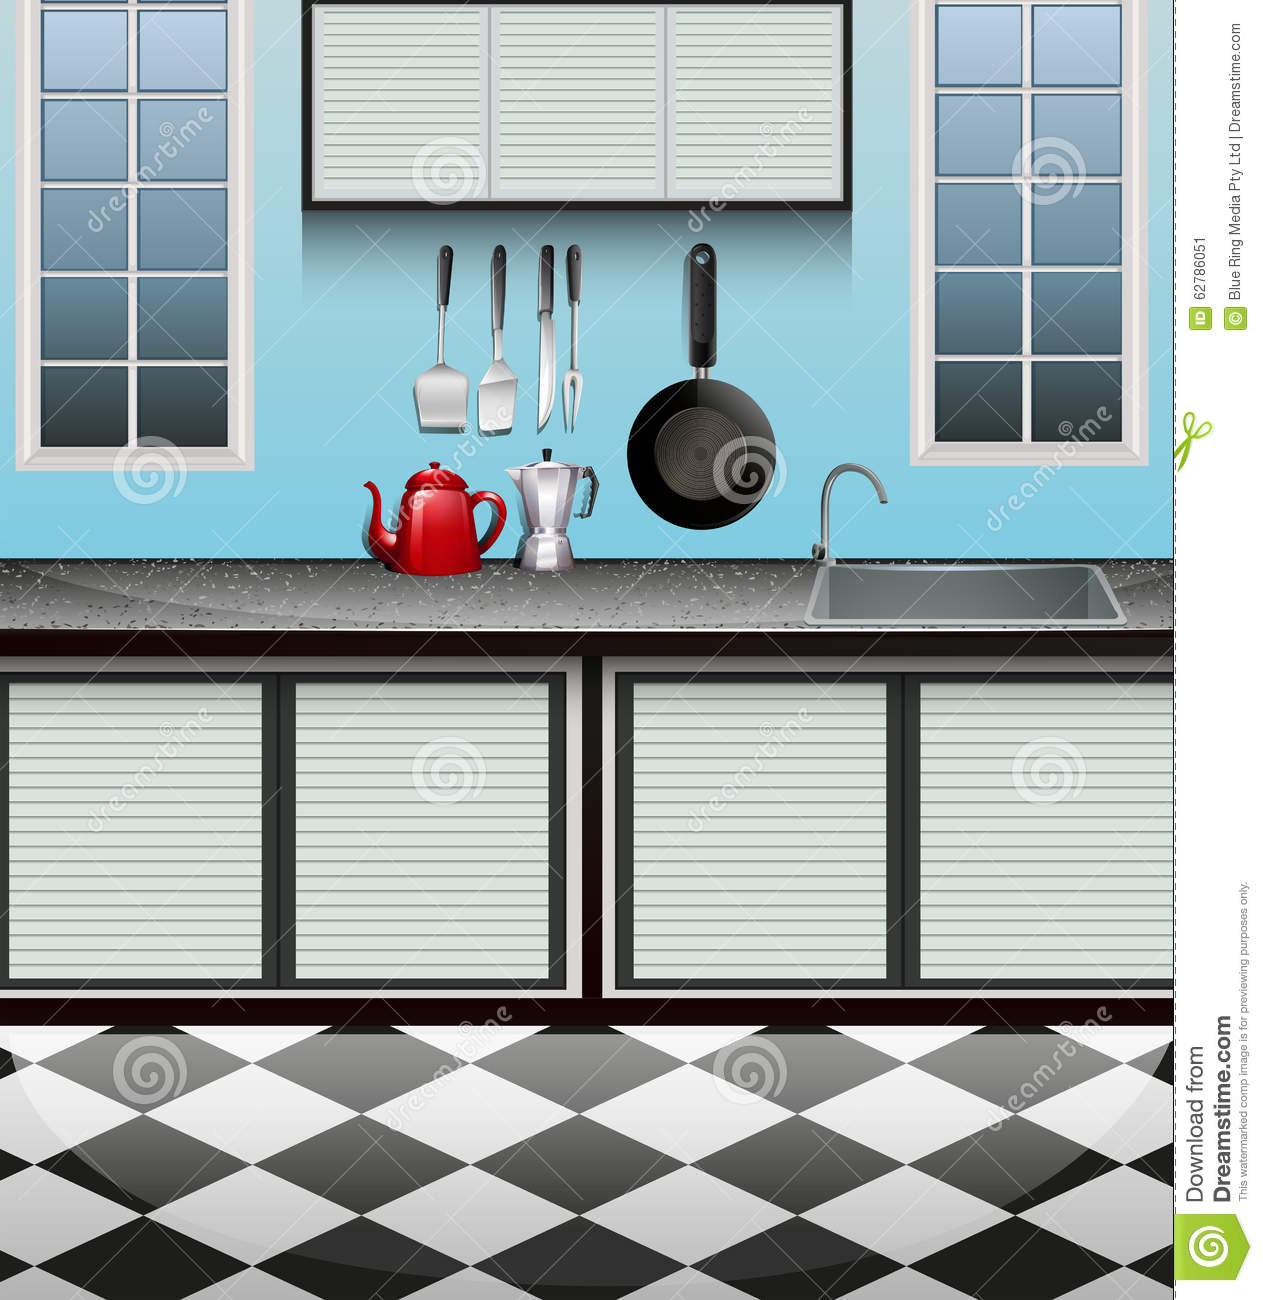 Filename kitchen room sink counter illustration 62786051 jpg view image